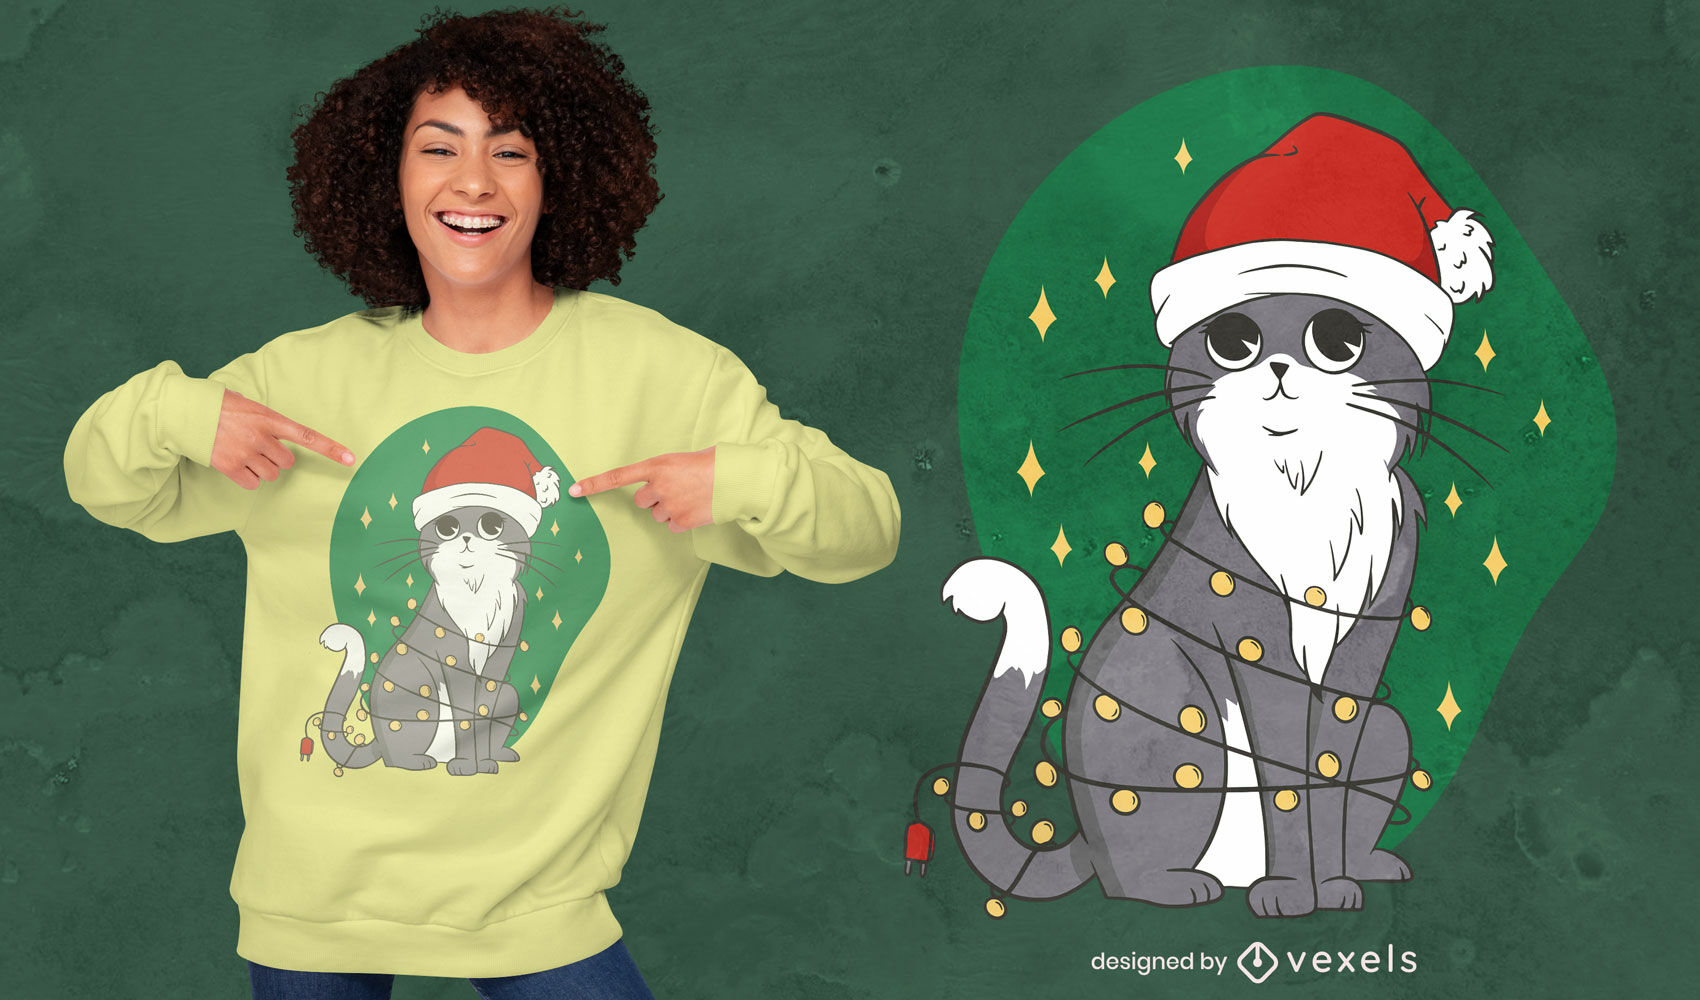 Cat with christmas tree lights t-shirt design